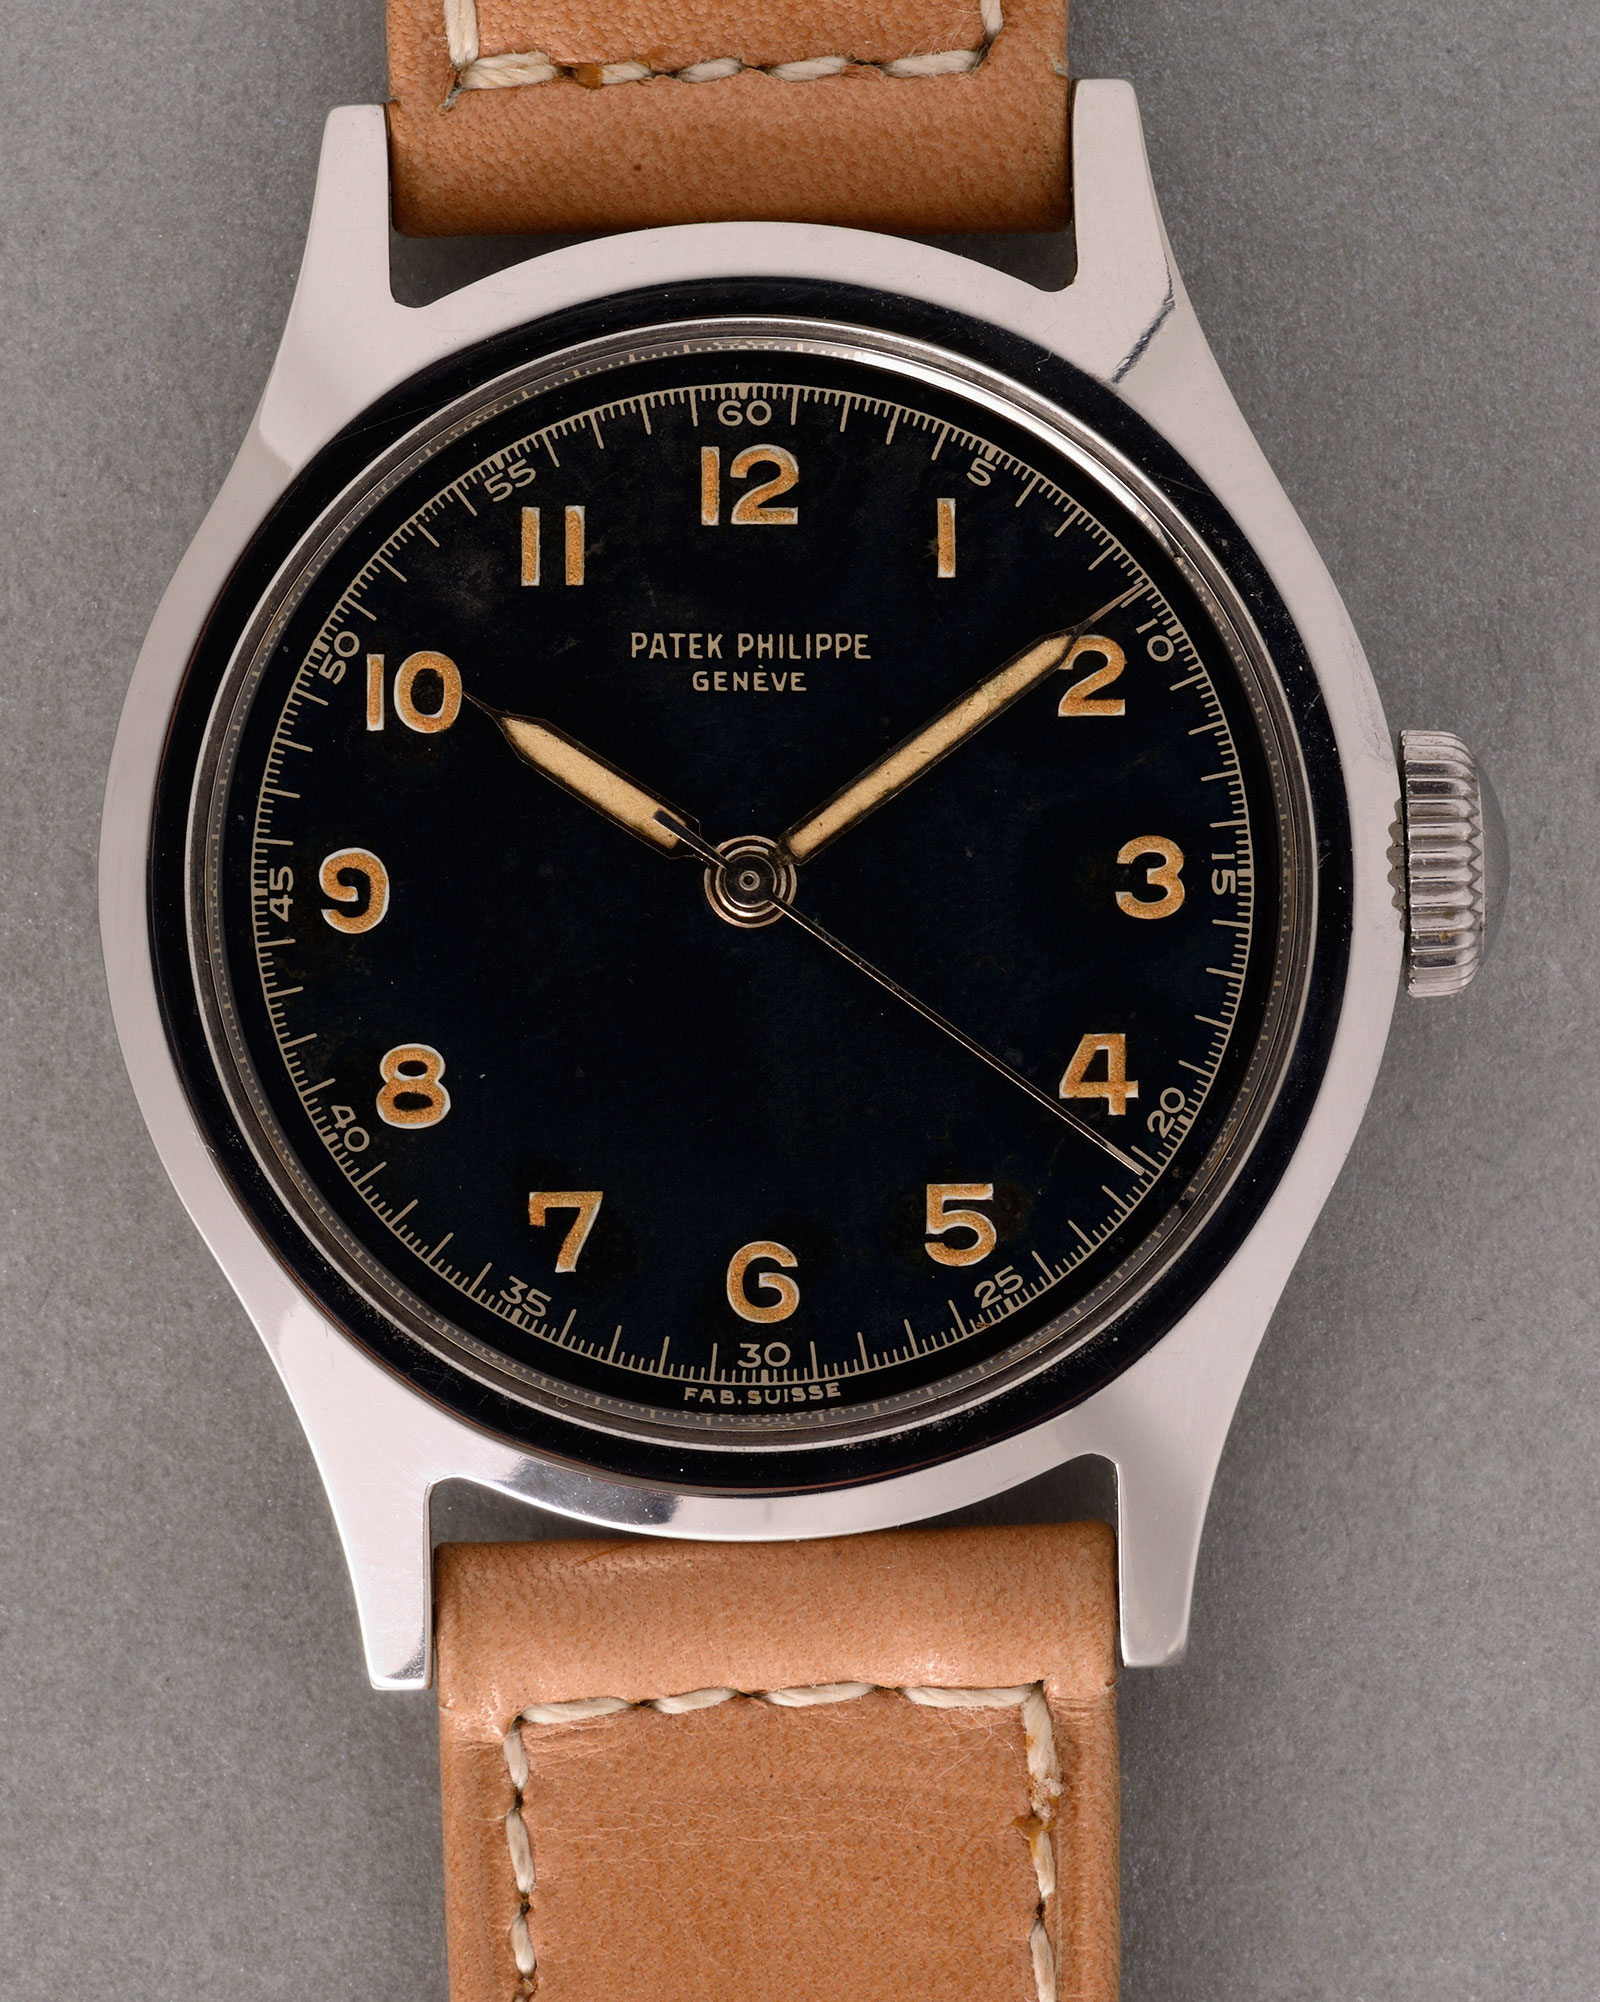 Phillips GWA4 Patek 565 Night Watchman dial